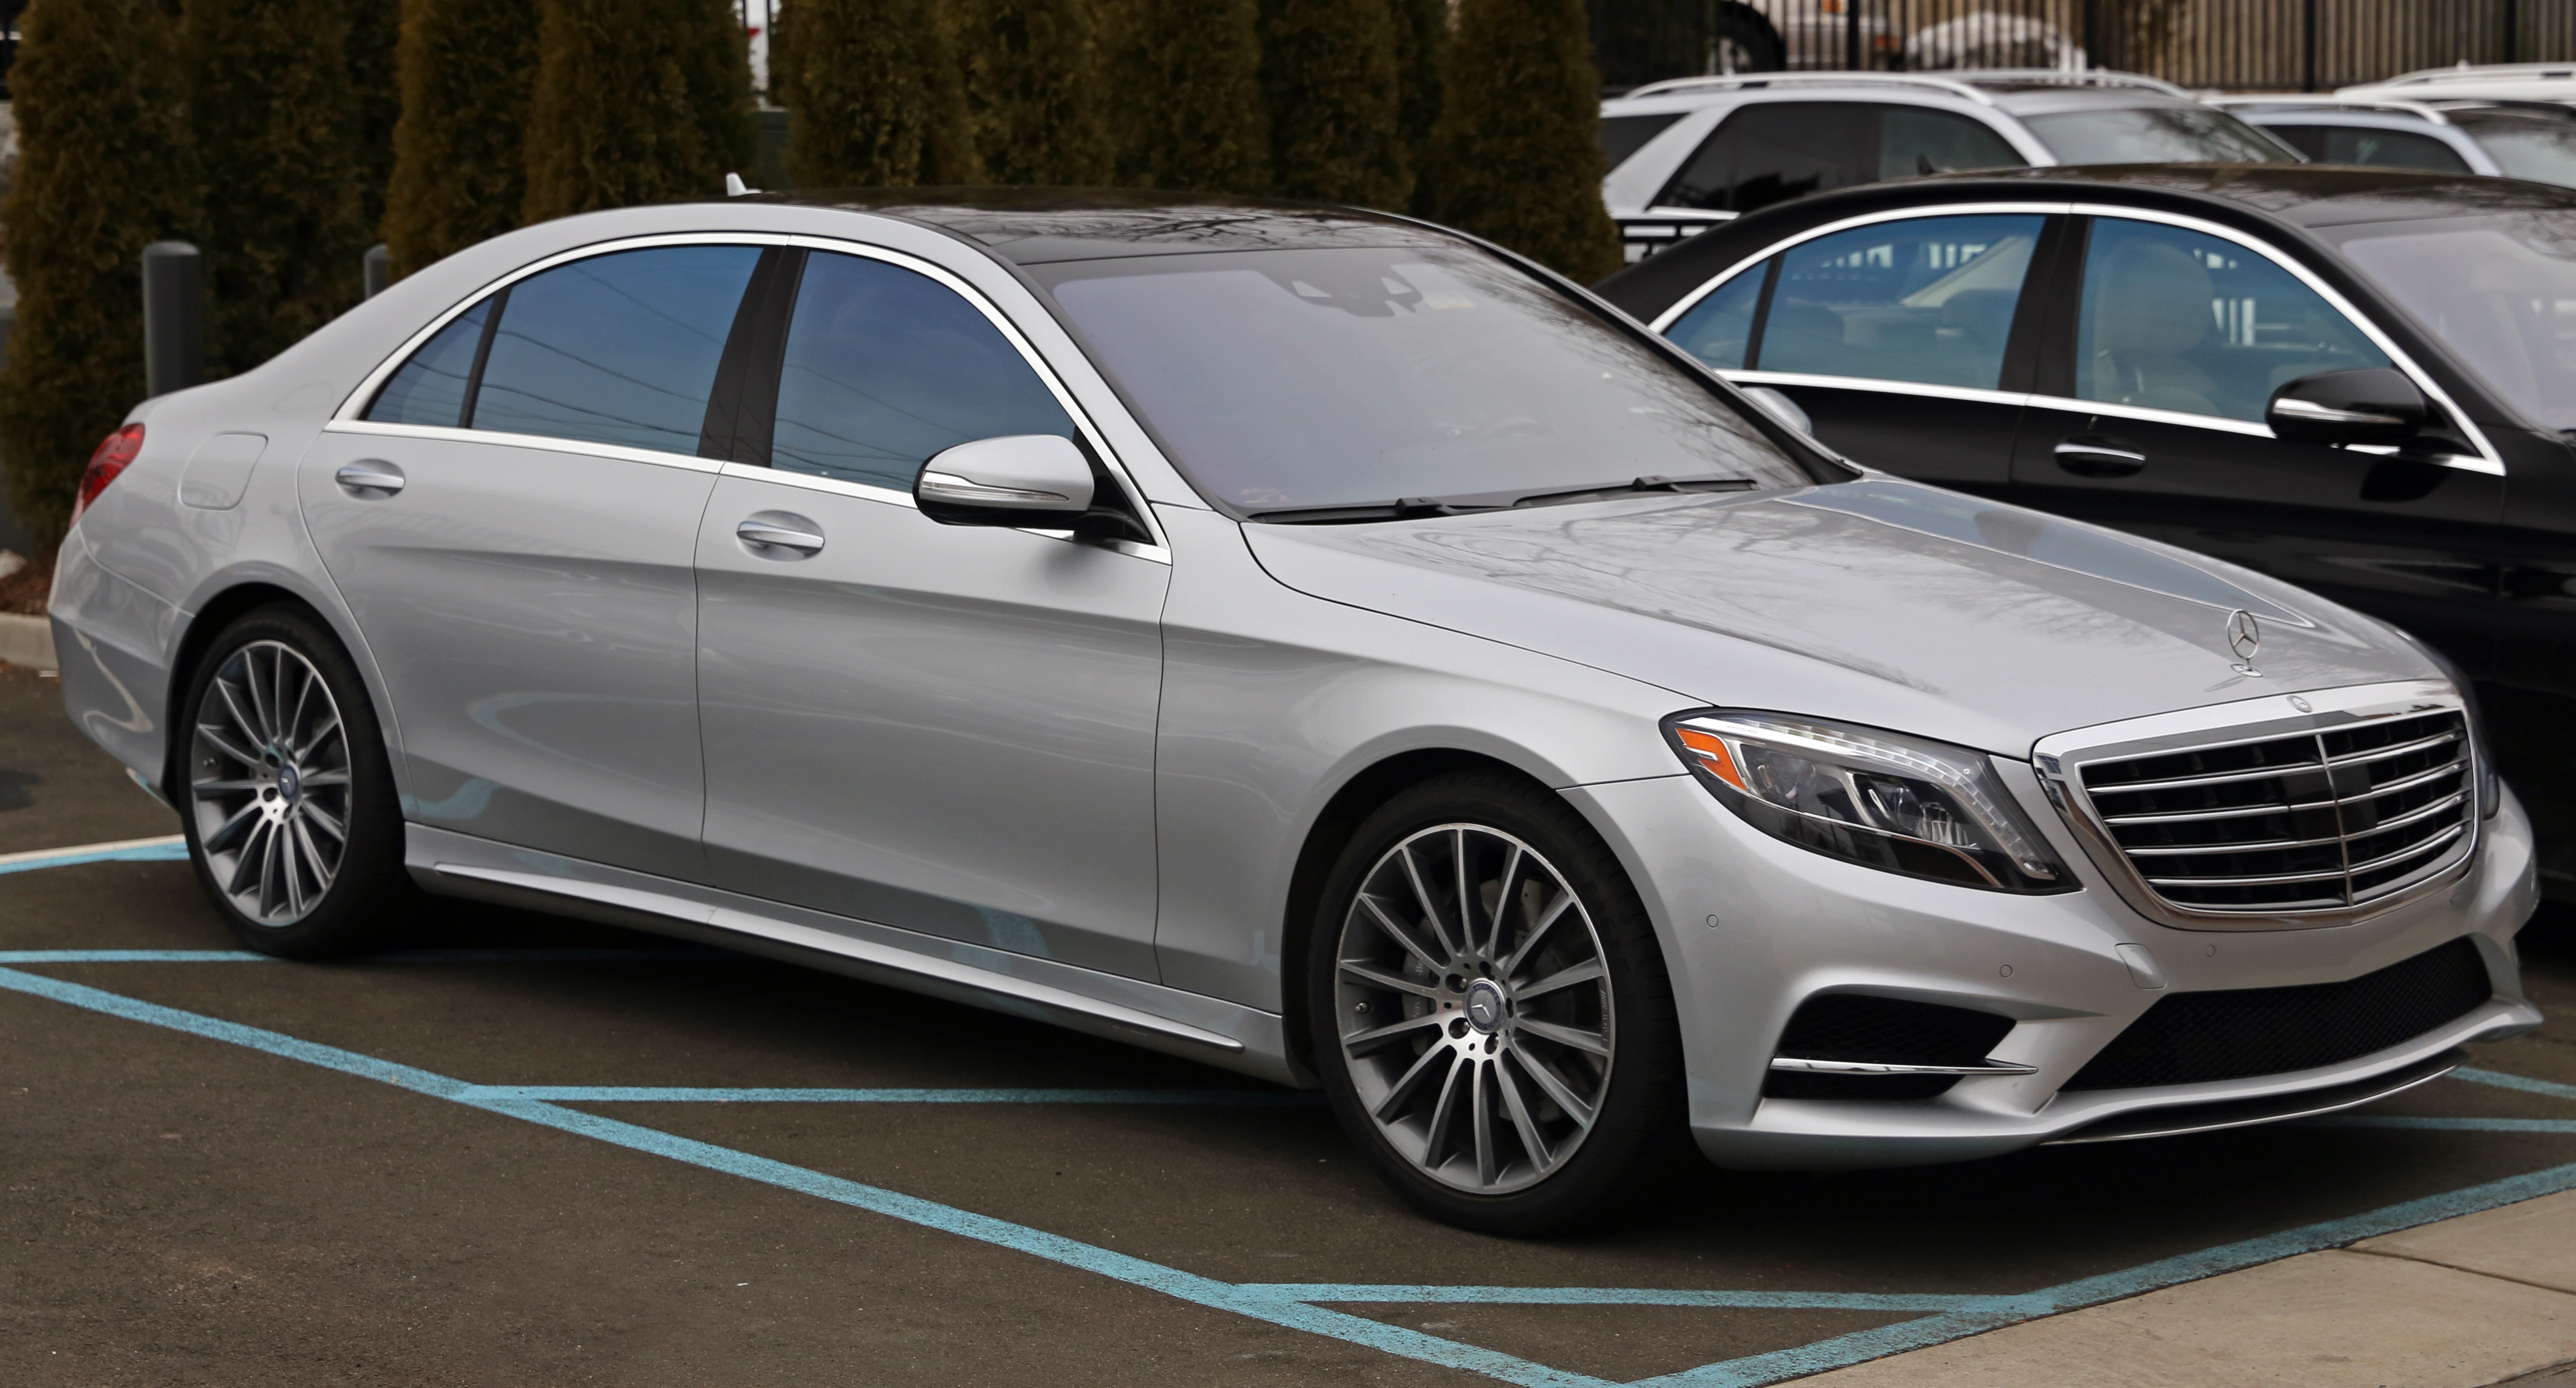 2014 Mercedes Benz S63 Amg 4matic Front Wheel | 2017 - 2018 Best Cars ...